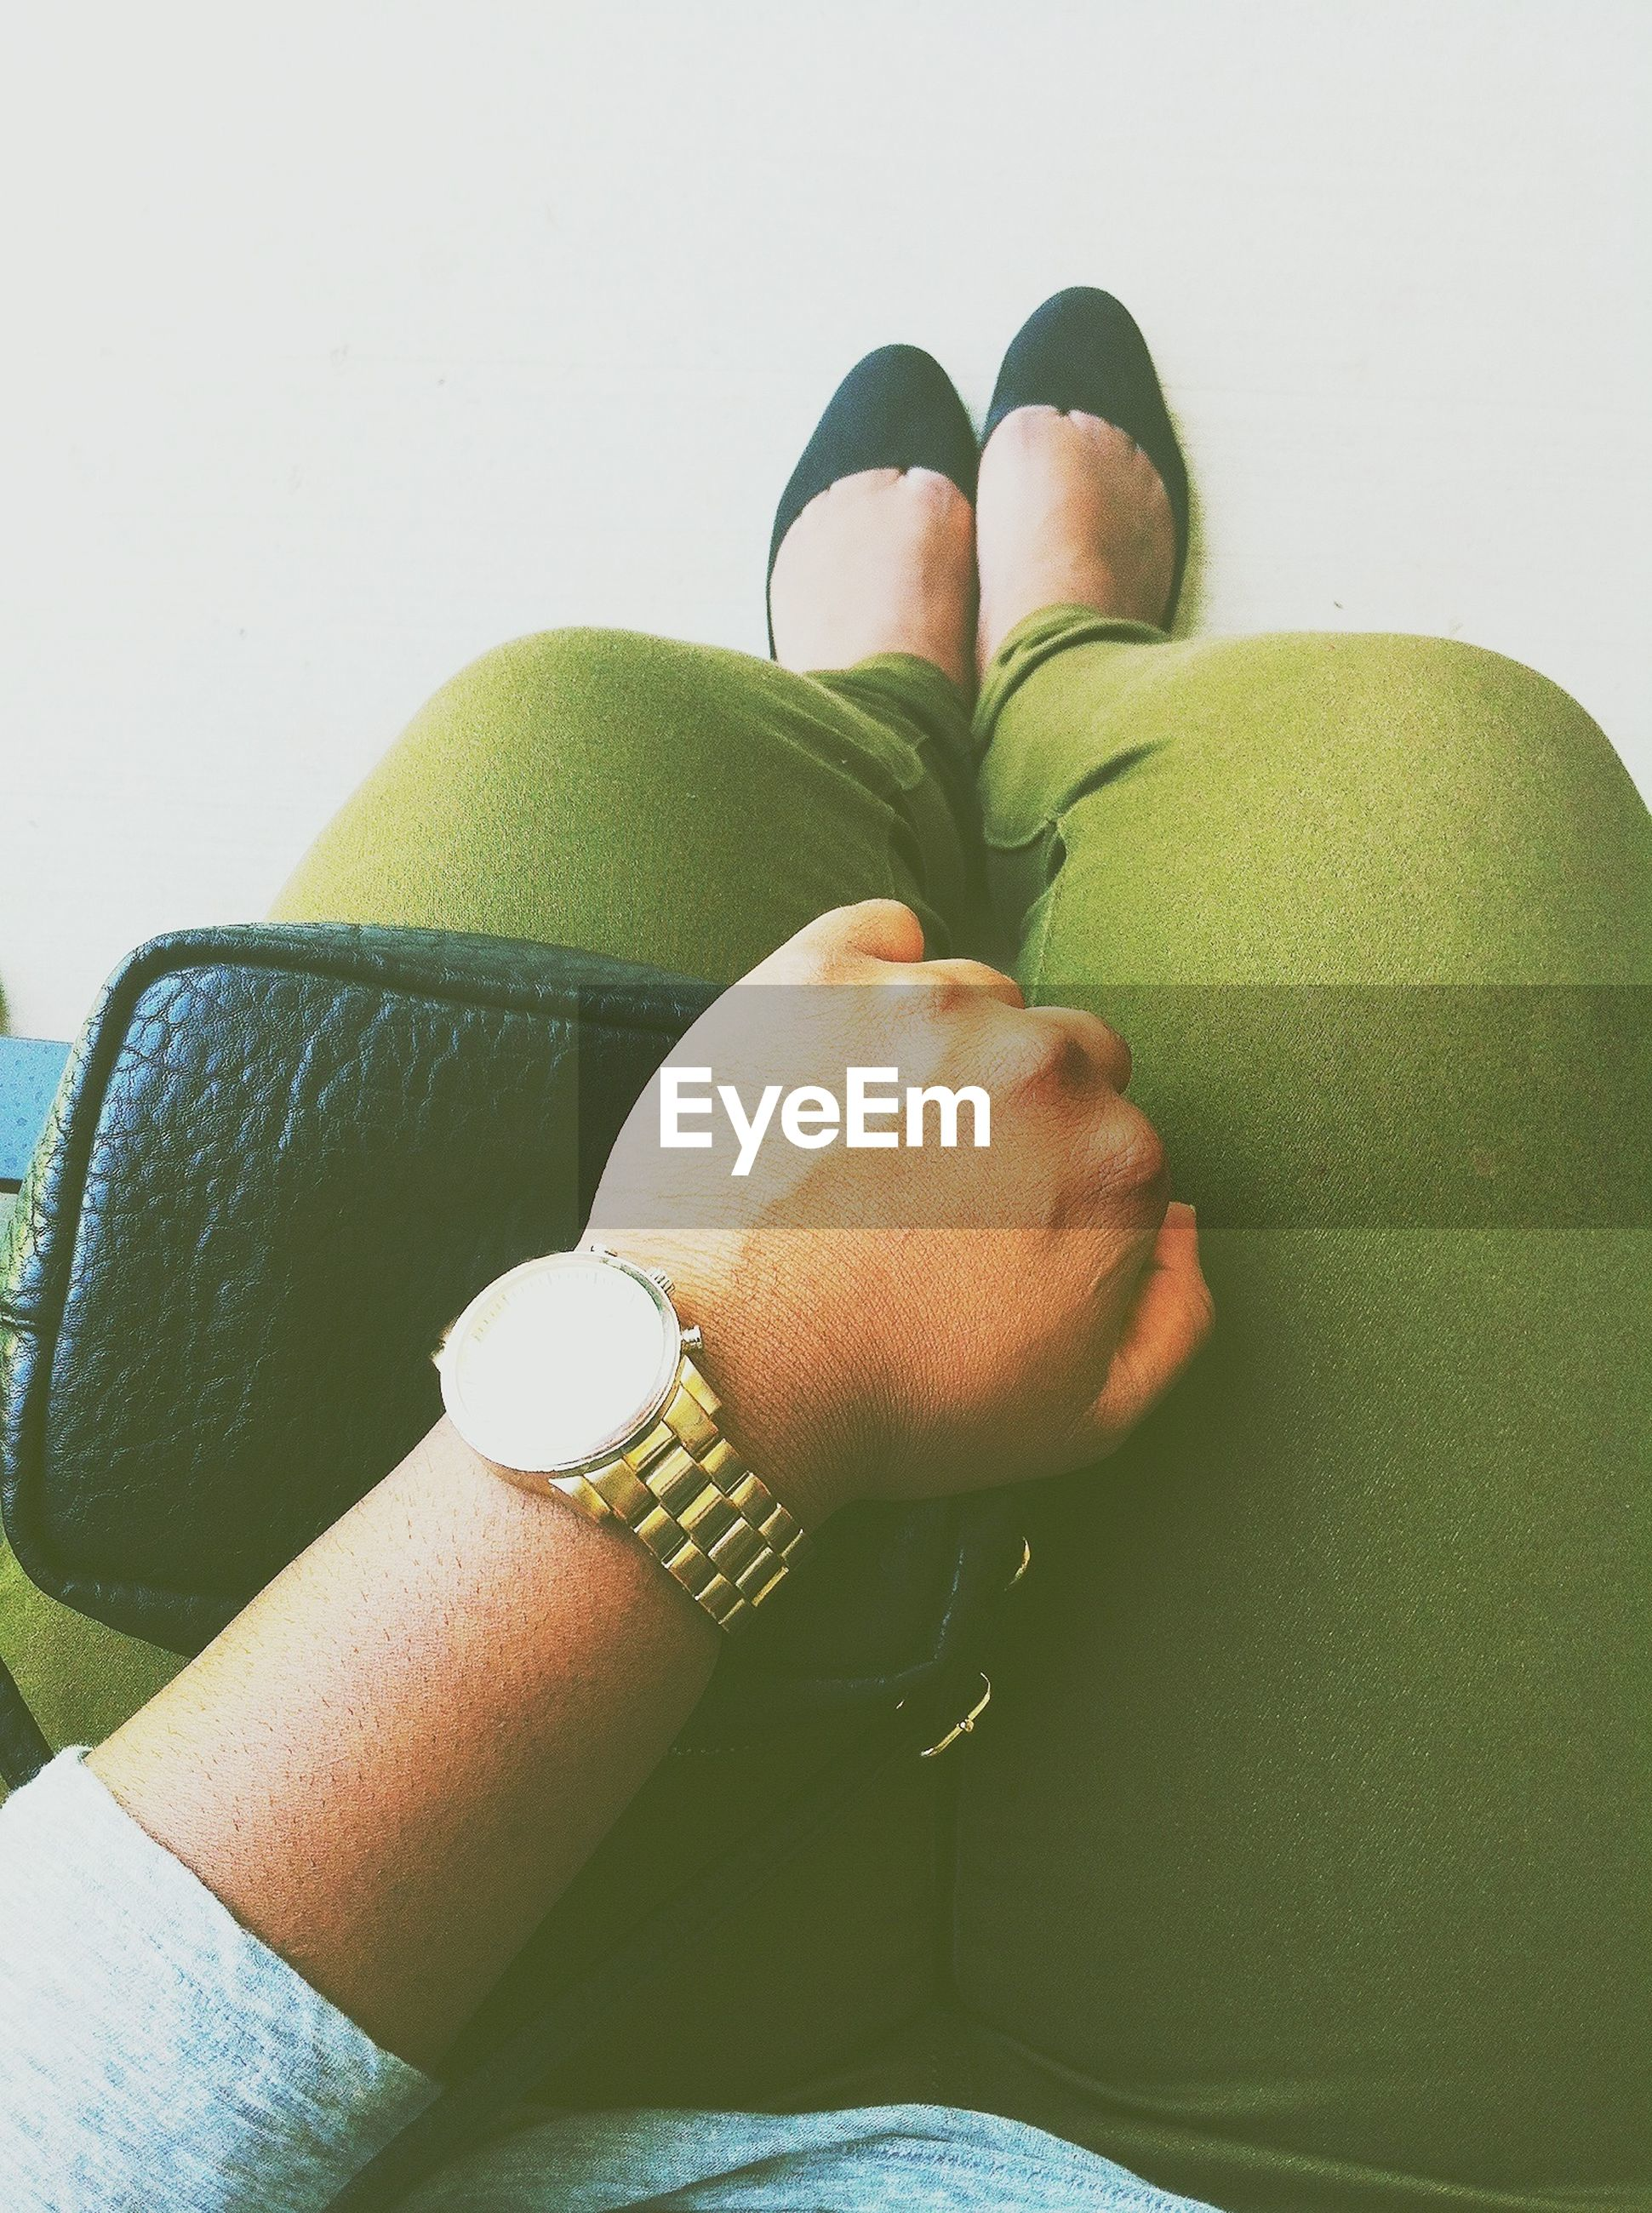 personal perspective, green color, close-up, person, food and drink, low section, part of, shoe, fruit, food, unrecognizable person, holding, day, healthy eating, lifestyles, cropped